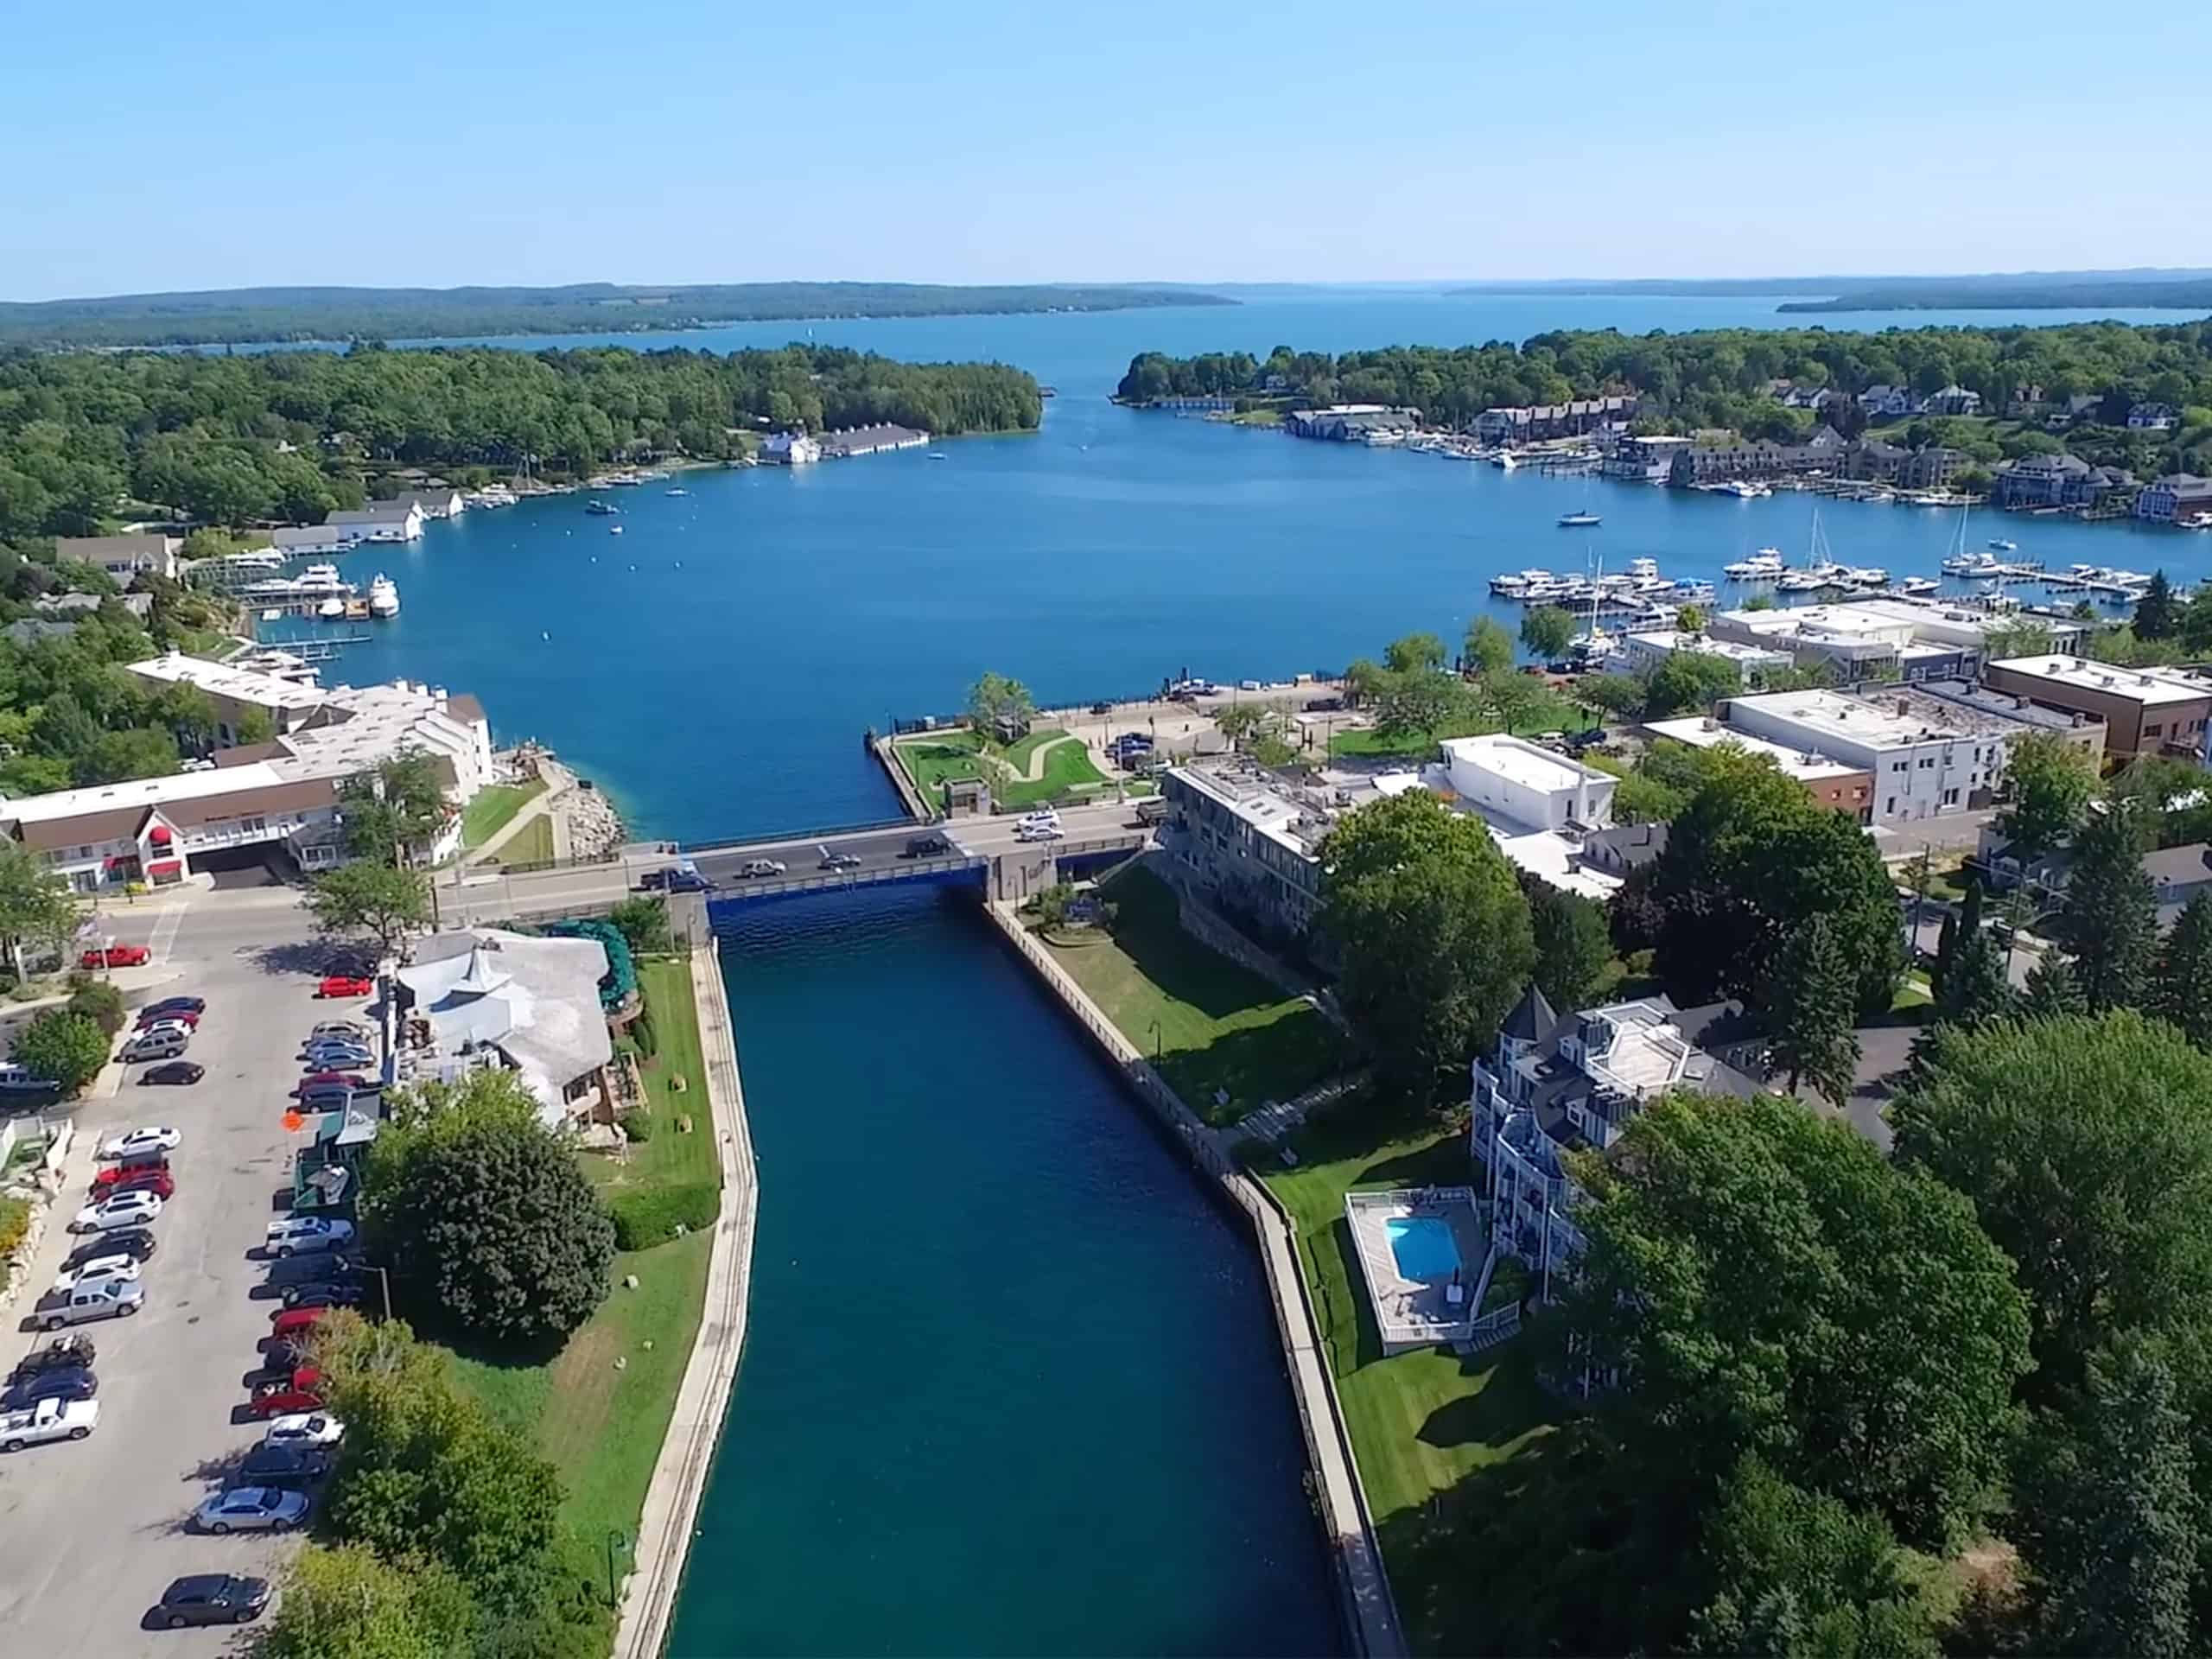 Charlevoix is nice small town for health and wellness activity